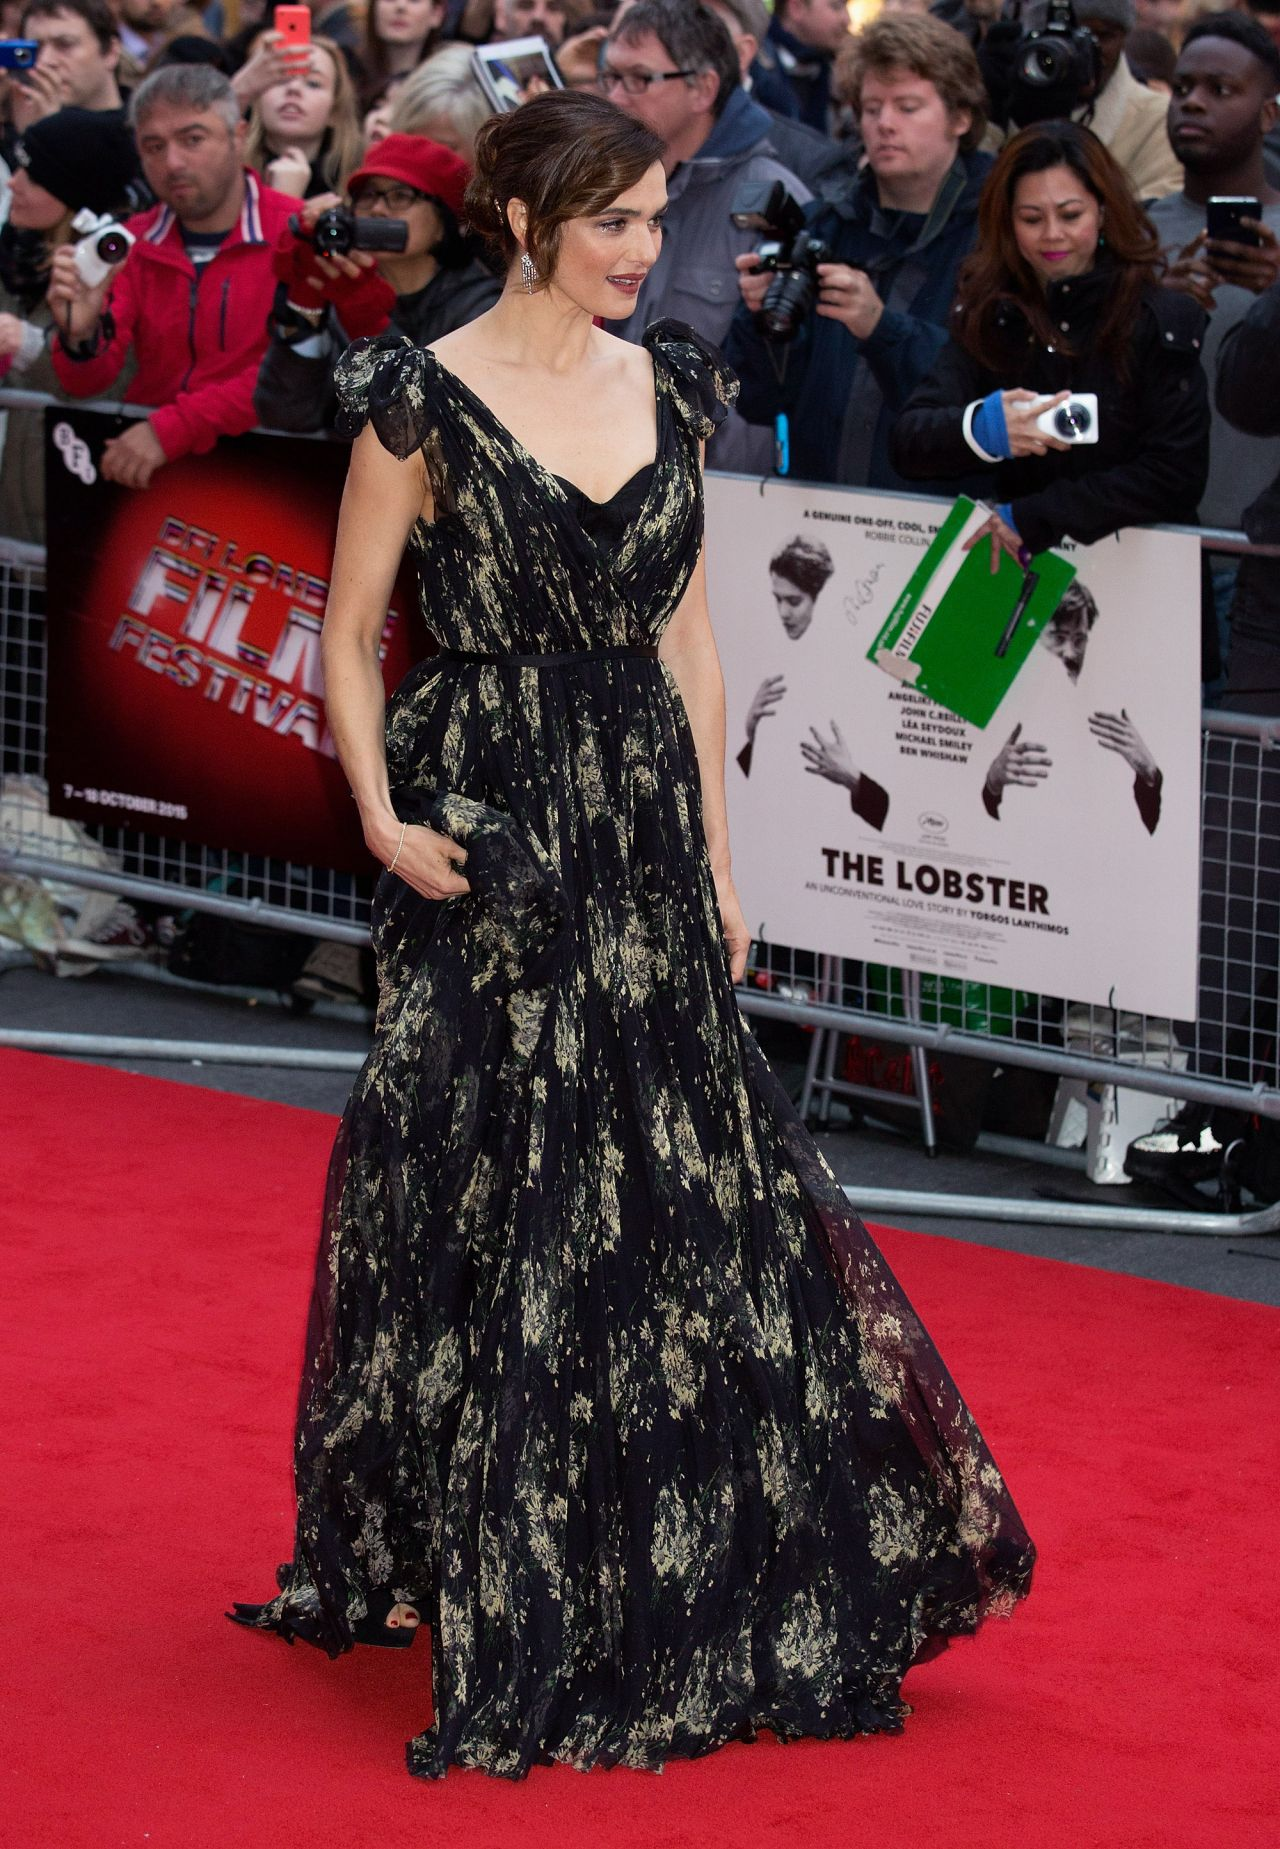 rachel-weisz-the-lobster-dare-gala-bfi-london-film-festival_6